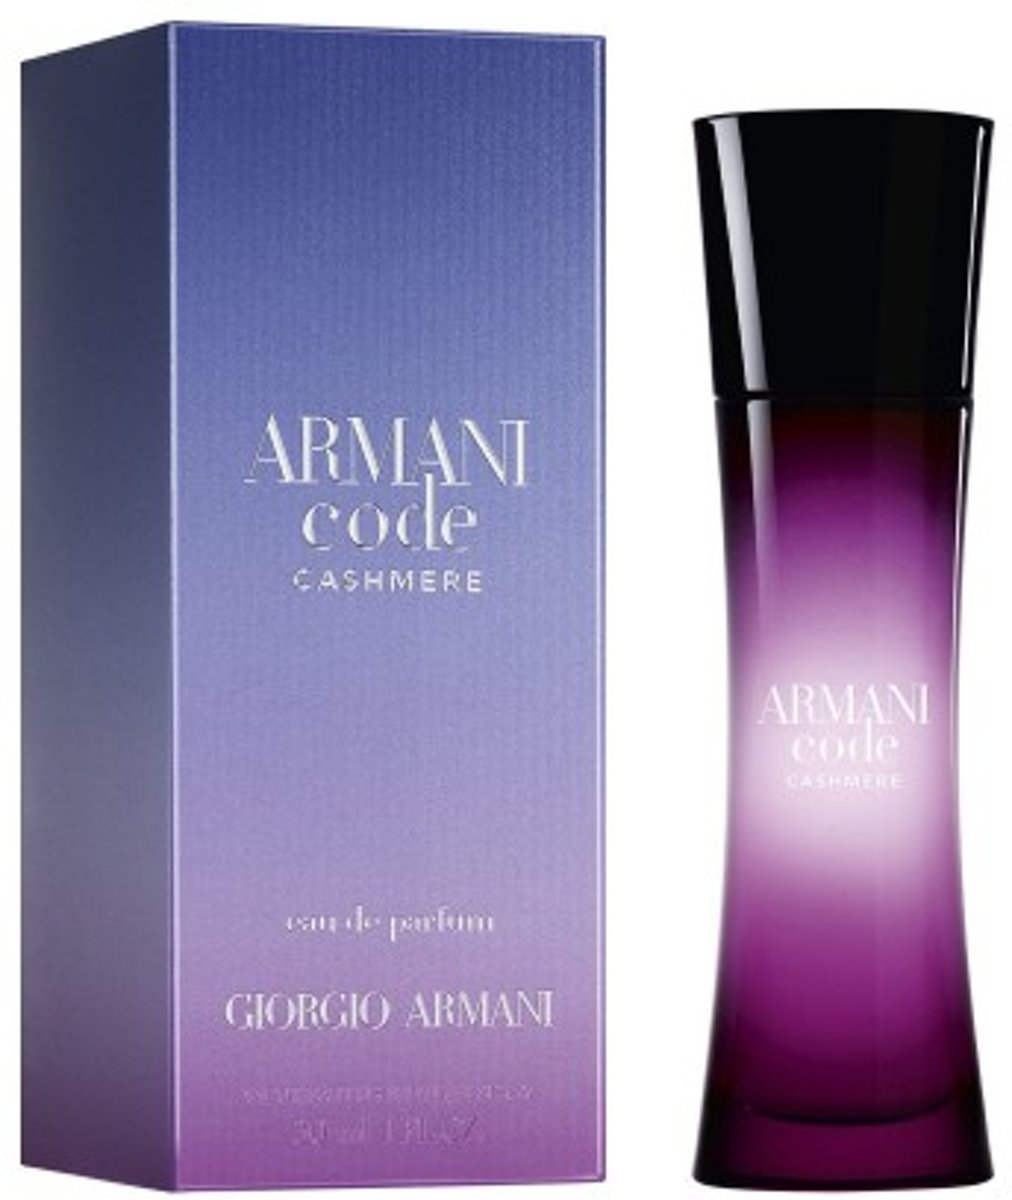 Armani Code Cashmere By Giorgio Armani Eau De Parfum Spray 75 ml - Fragrances For Women